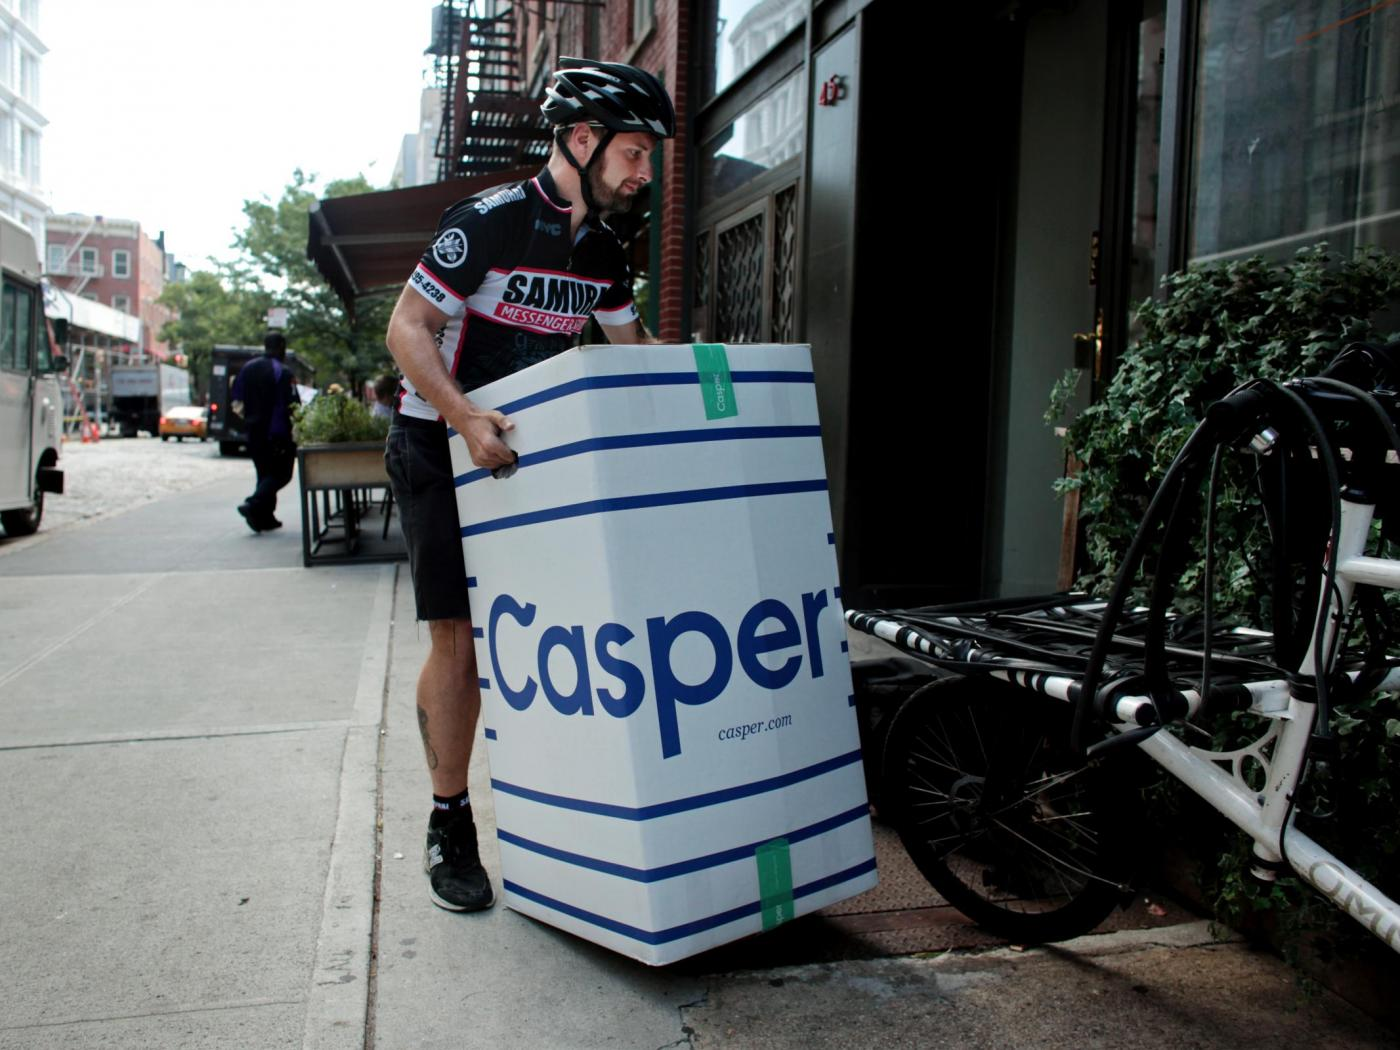 """Casper changed mattress shopping with the promise of a 100-night """"risk-free"""" trial and easy returns. Now the cost of those returns is being scrutinized as the online company prepares to go public."""